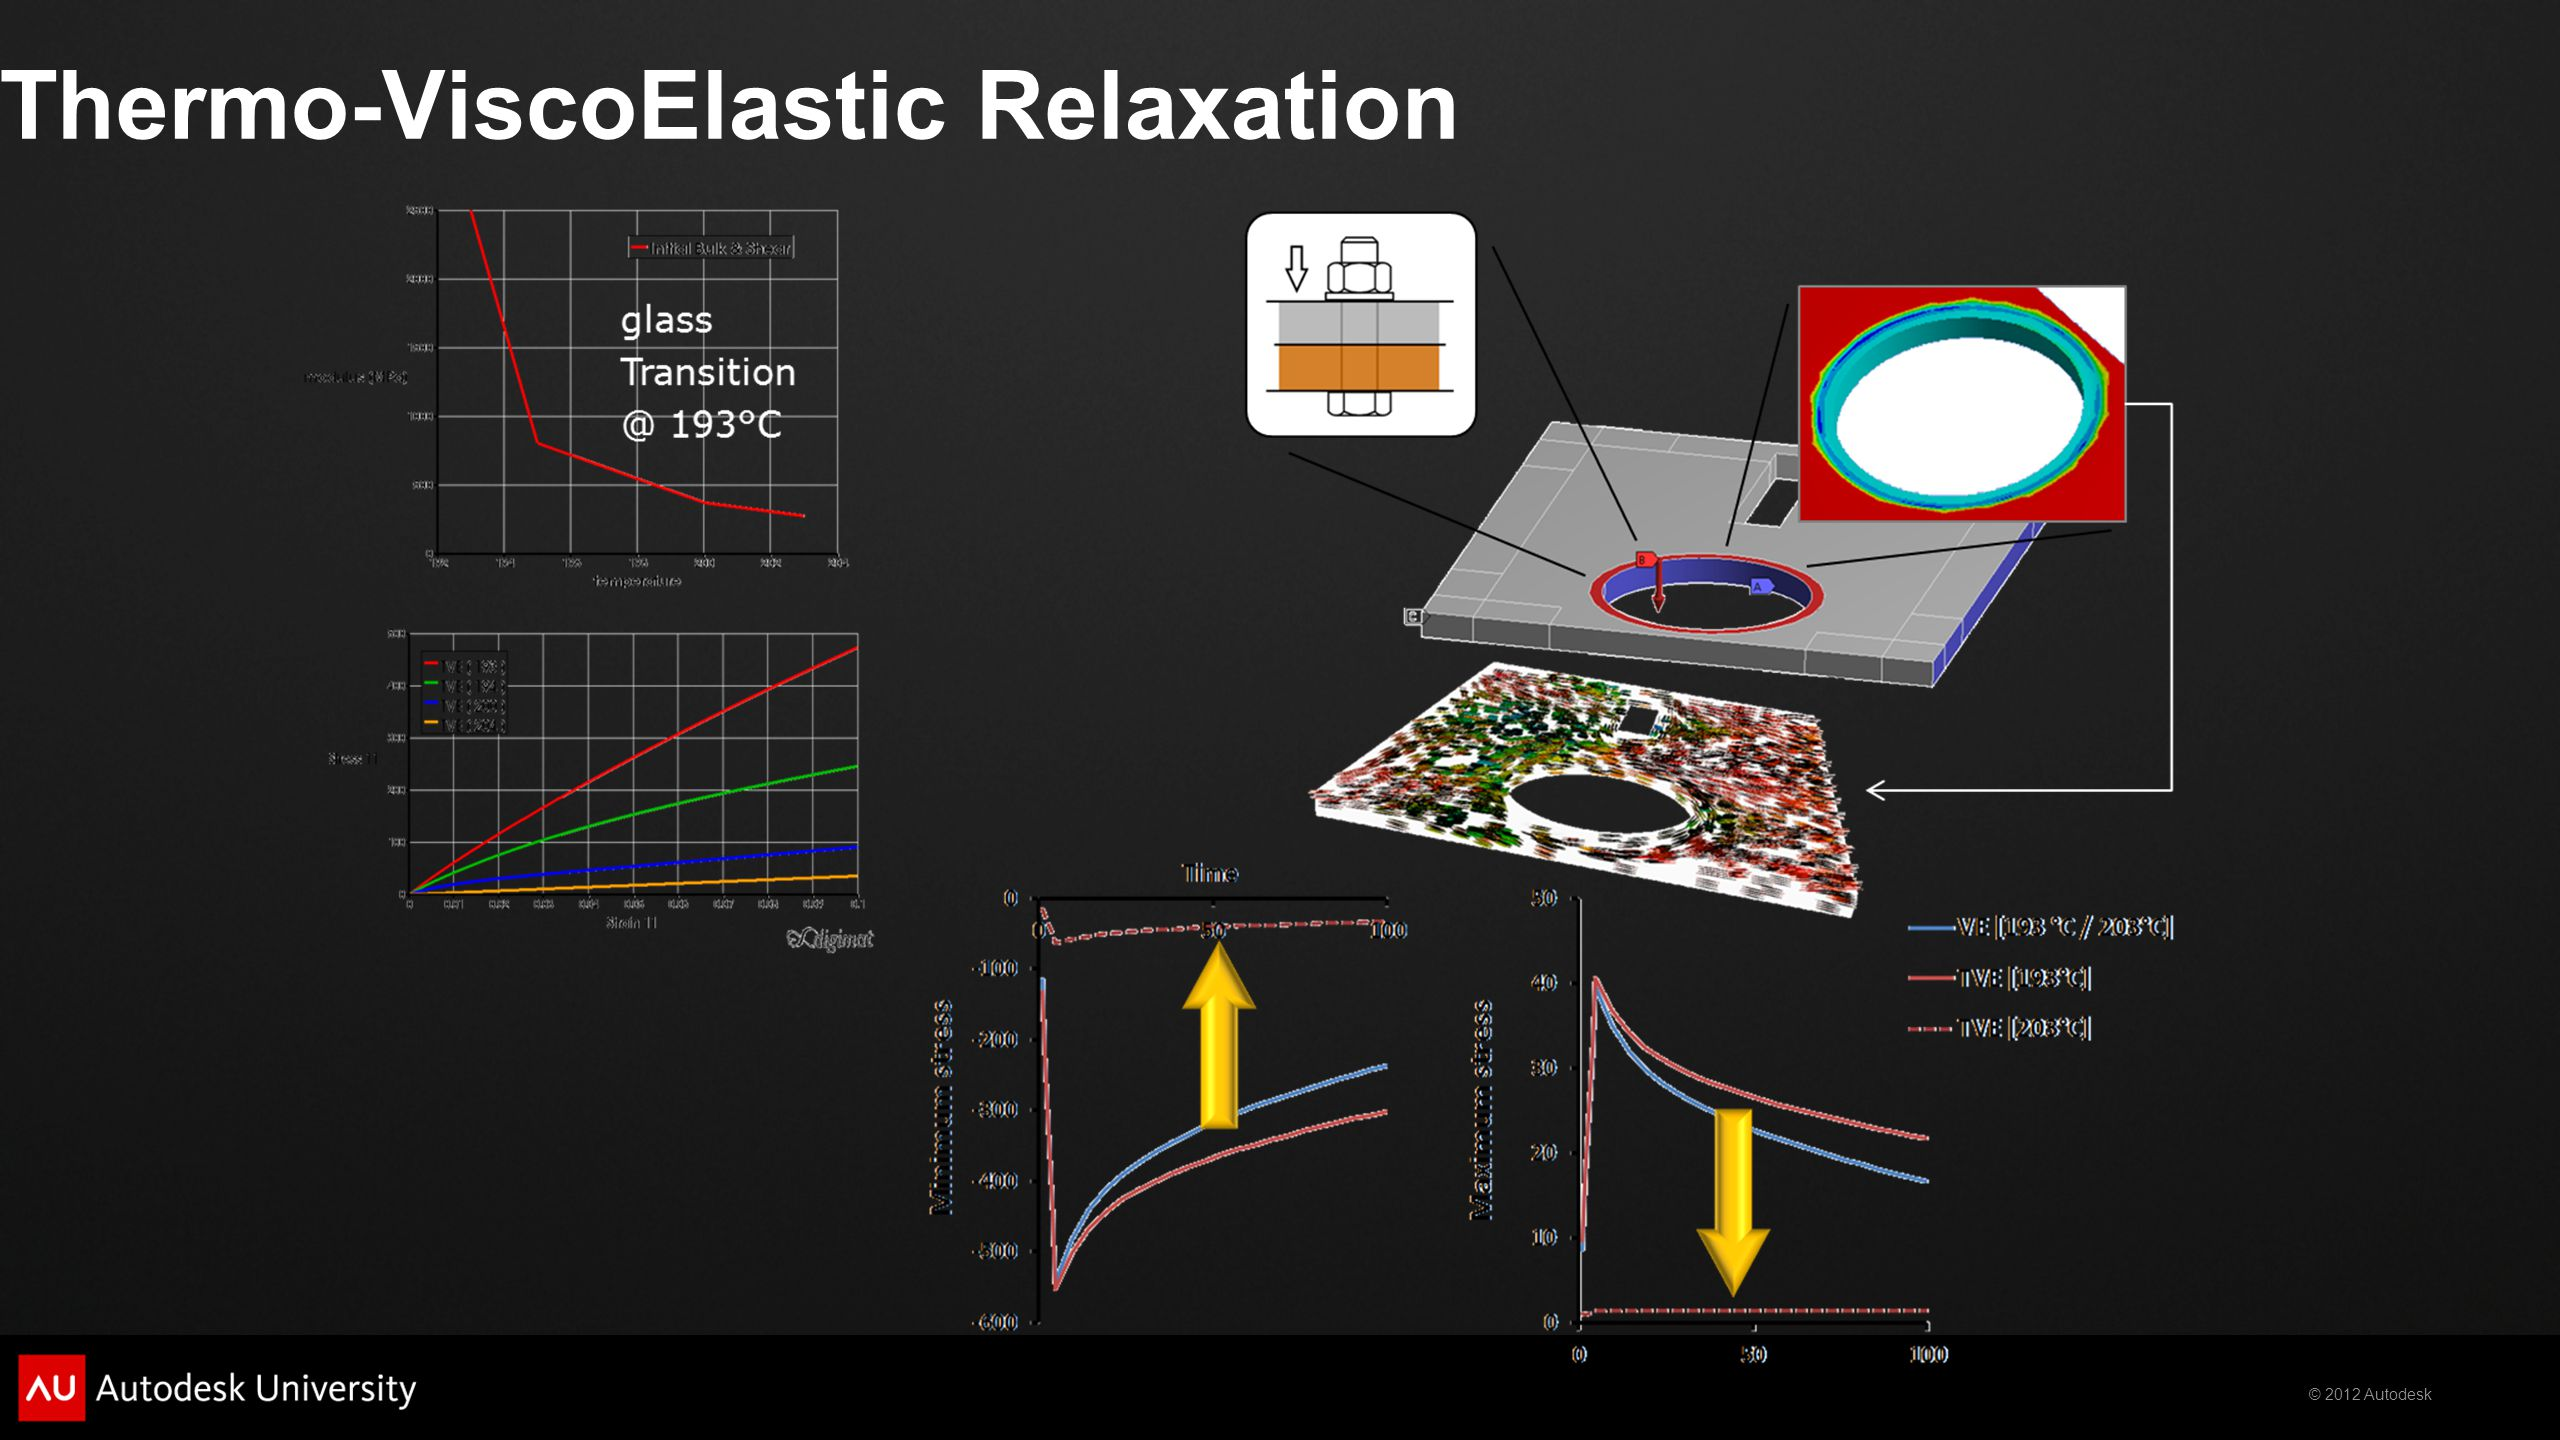 Thermo-ViscoElastic Relaxation